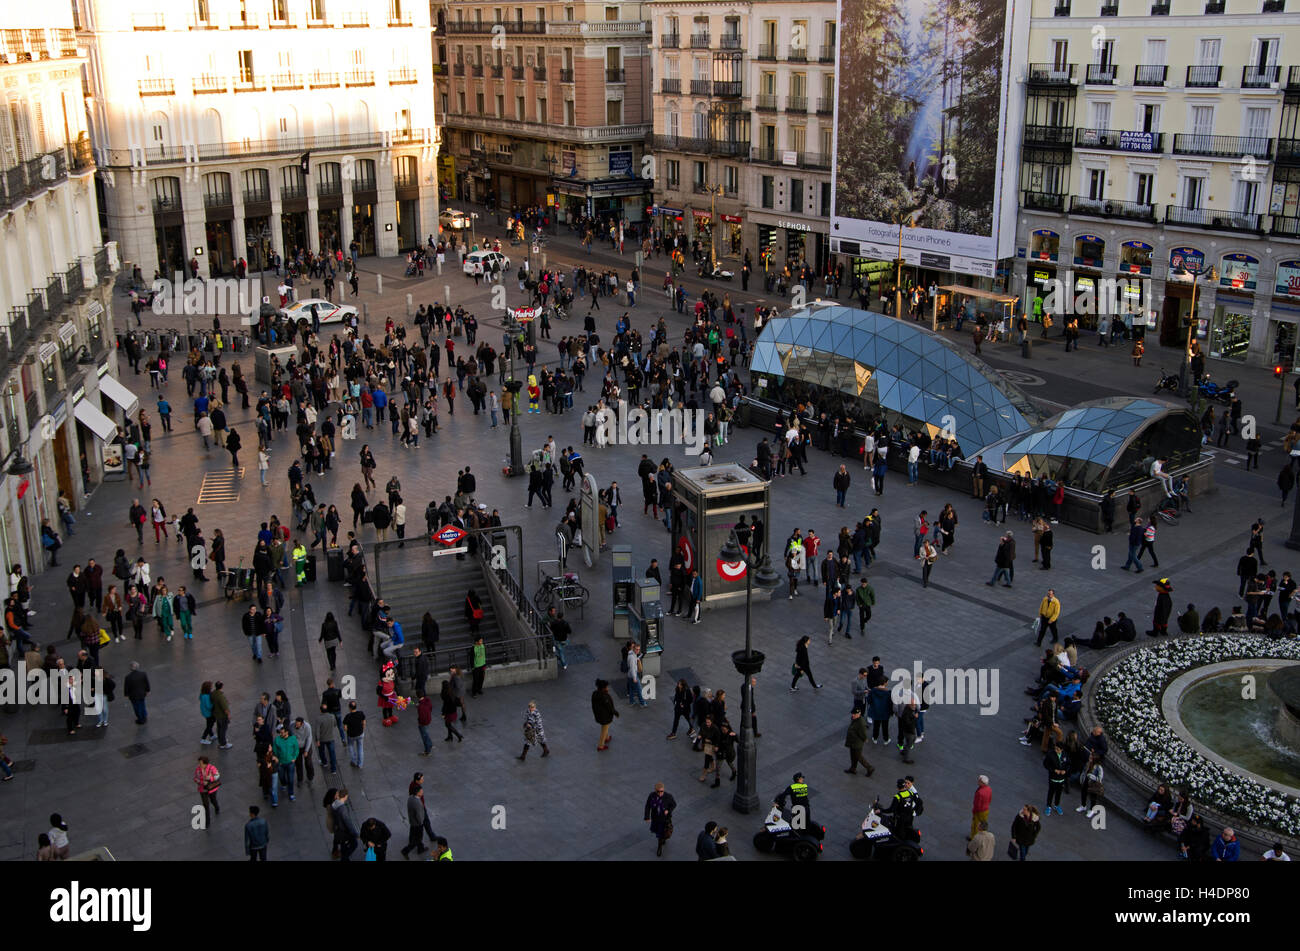 Puerta del Sol, hundreds of people mill around the plaza in the late afternoon. Stock Photo